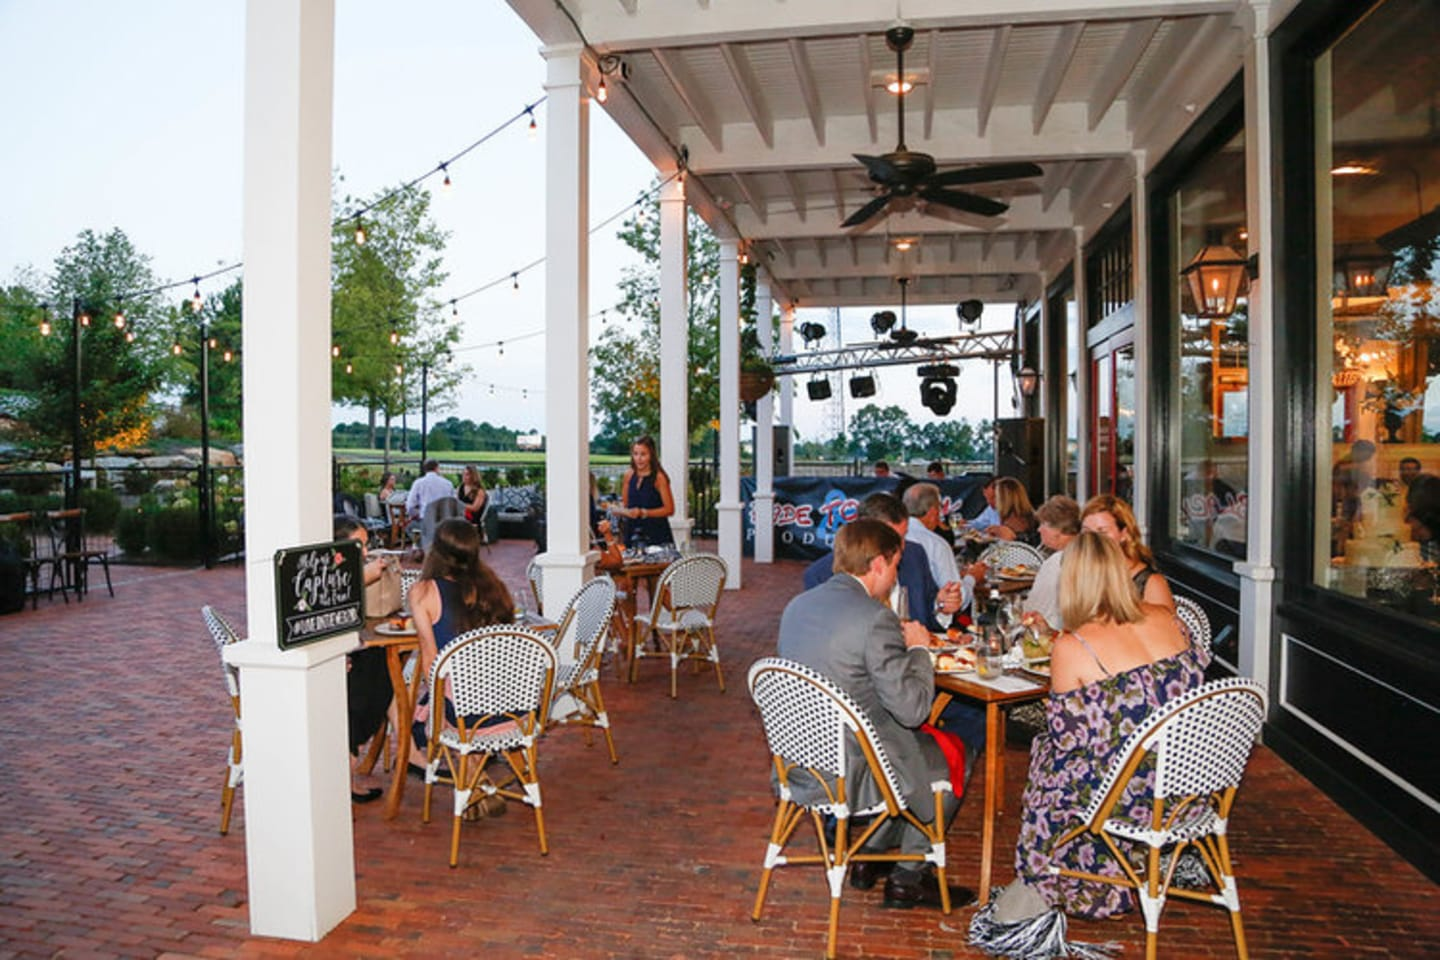 morten's old town patio event